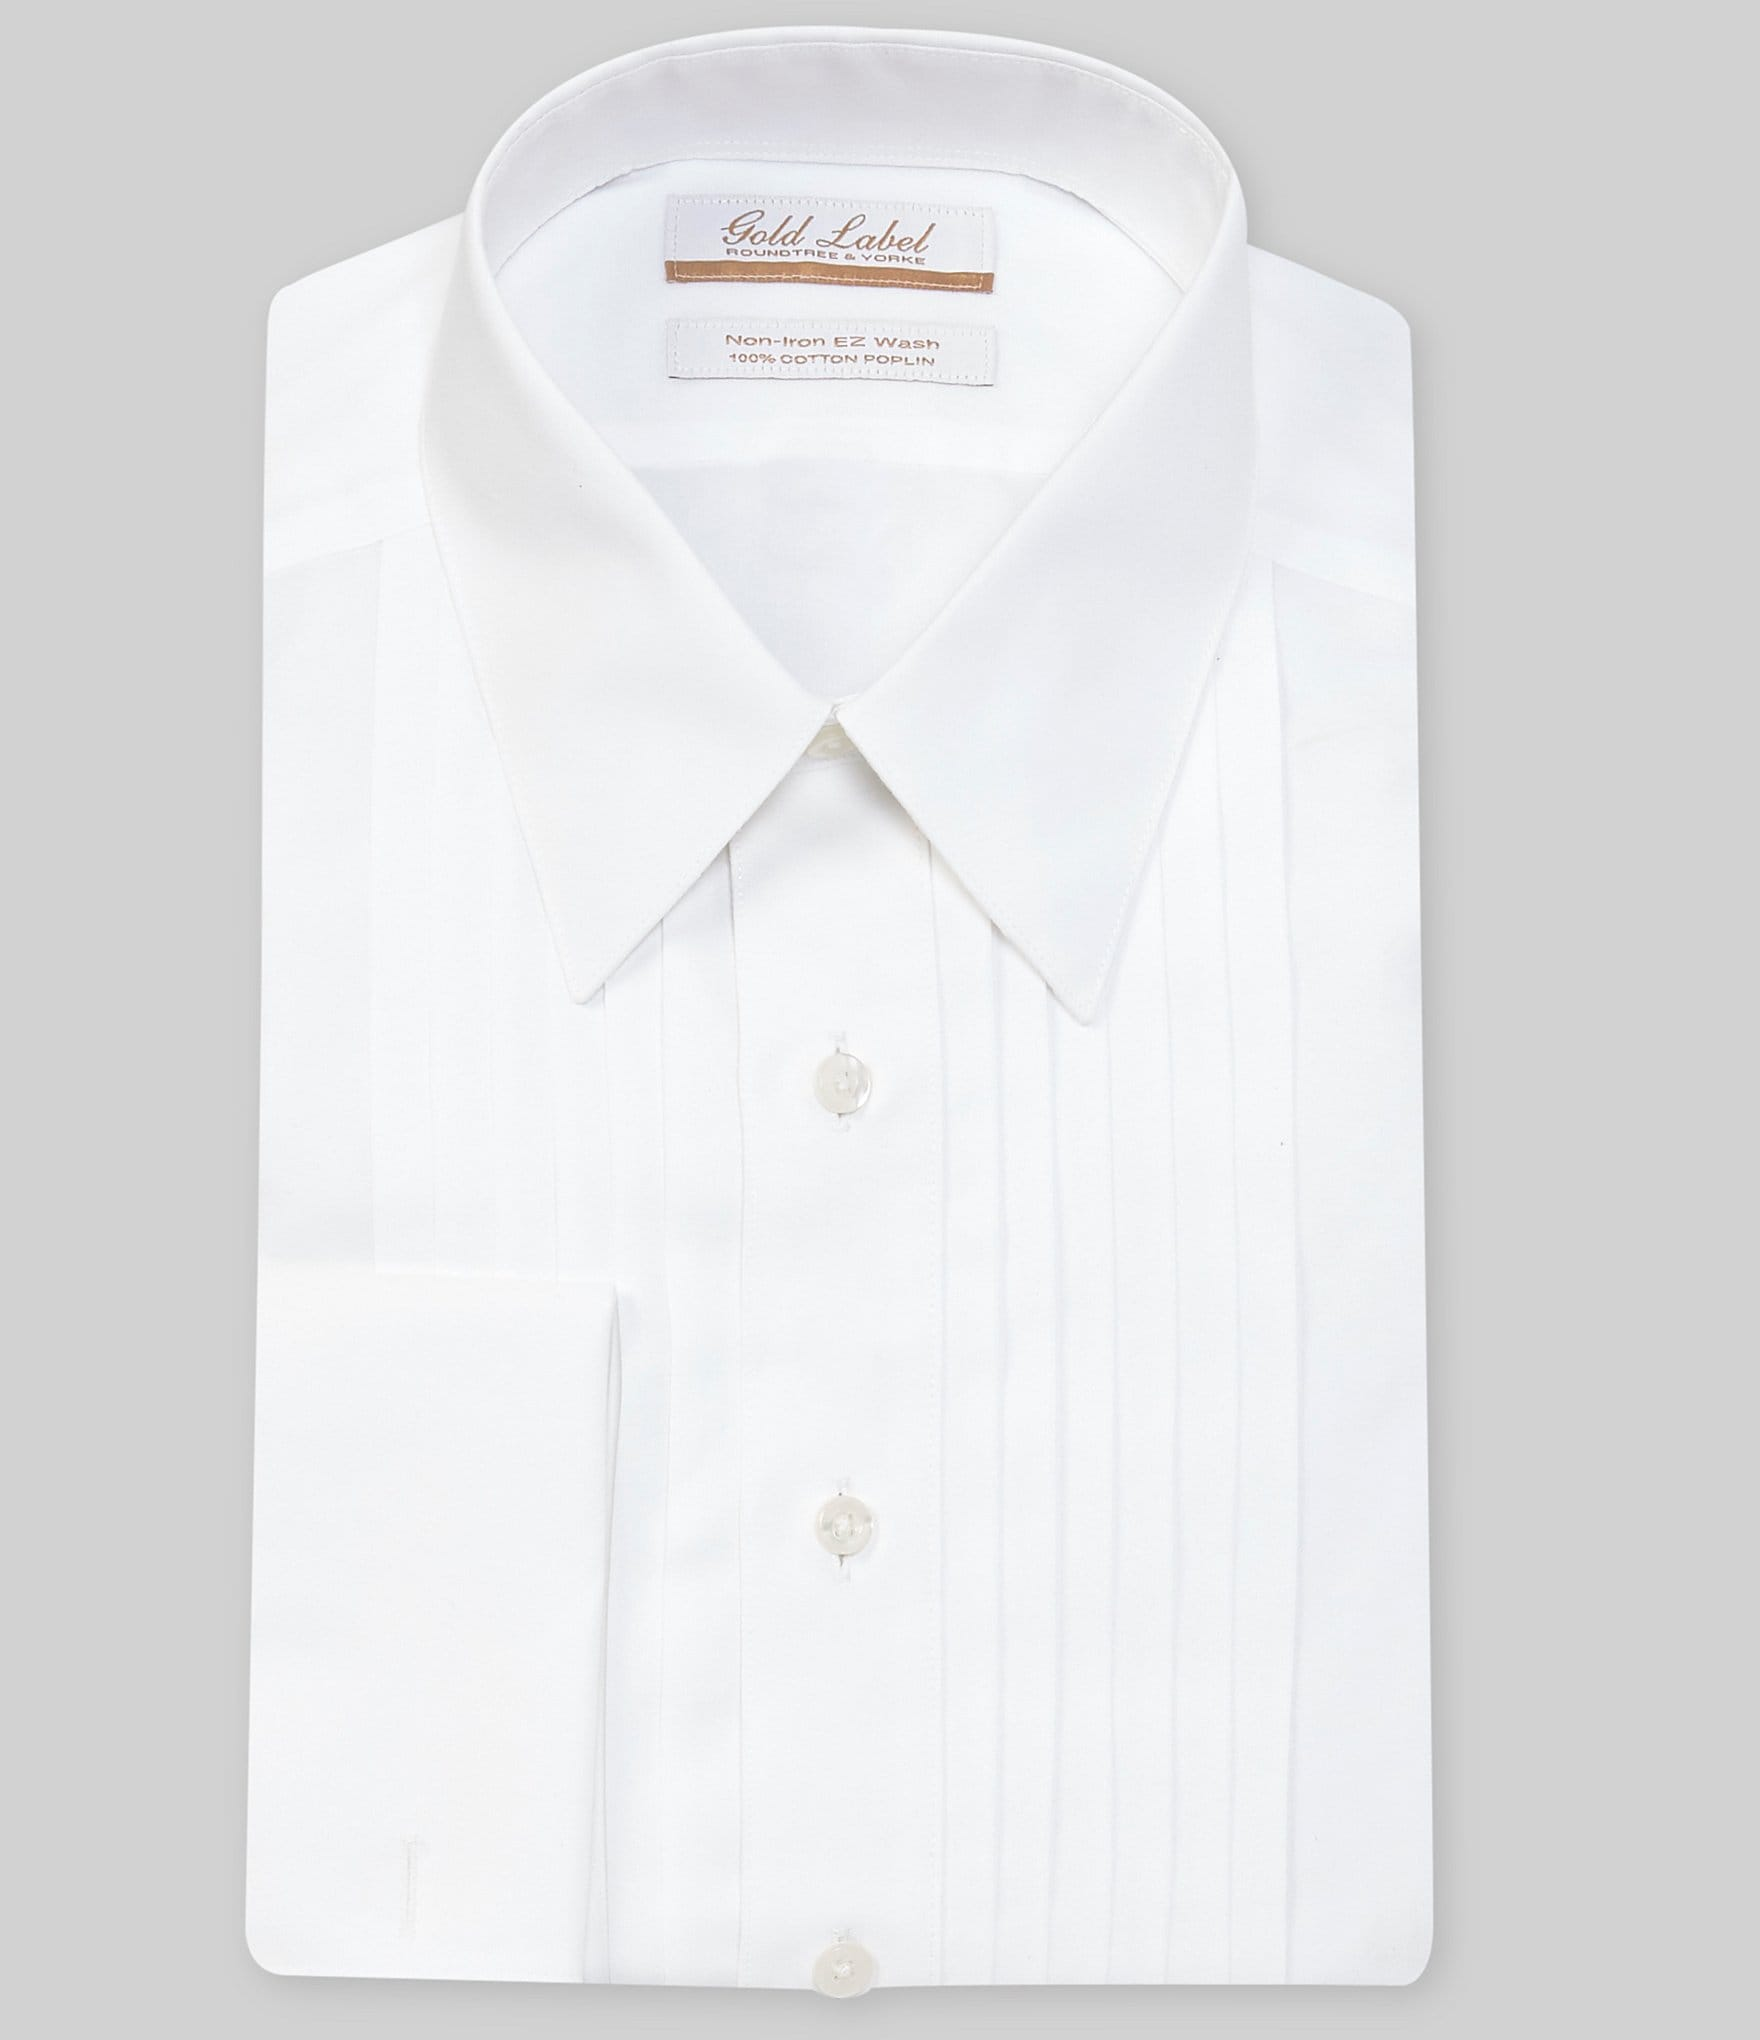 Gold Label Roundtree Yorke Non Iron Regular Full Fit